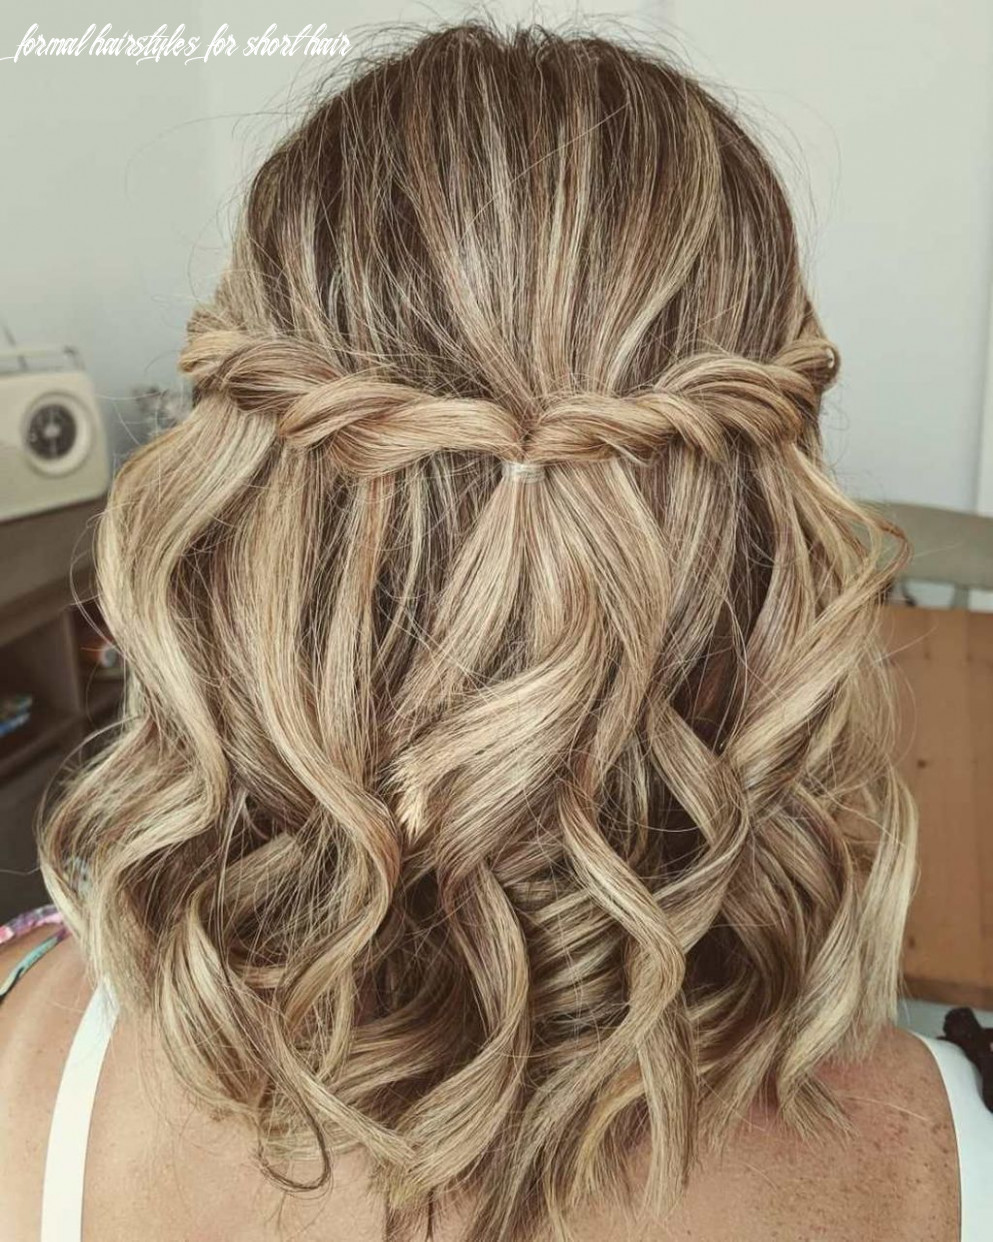 9 stunning and simple hairstyles for short hair hairstyles